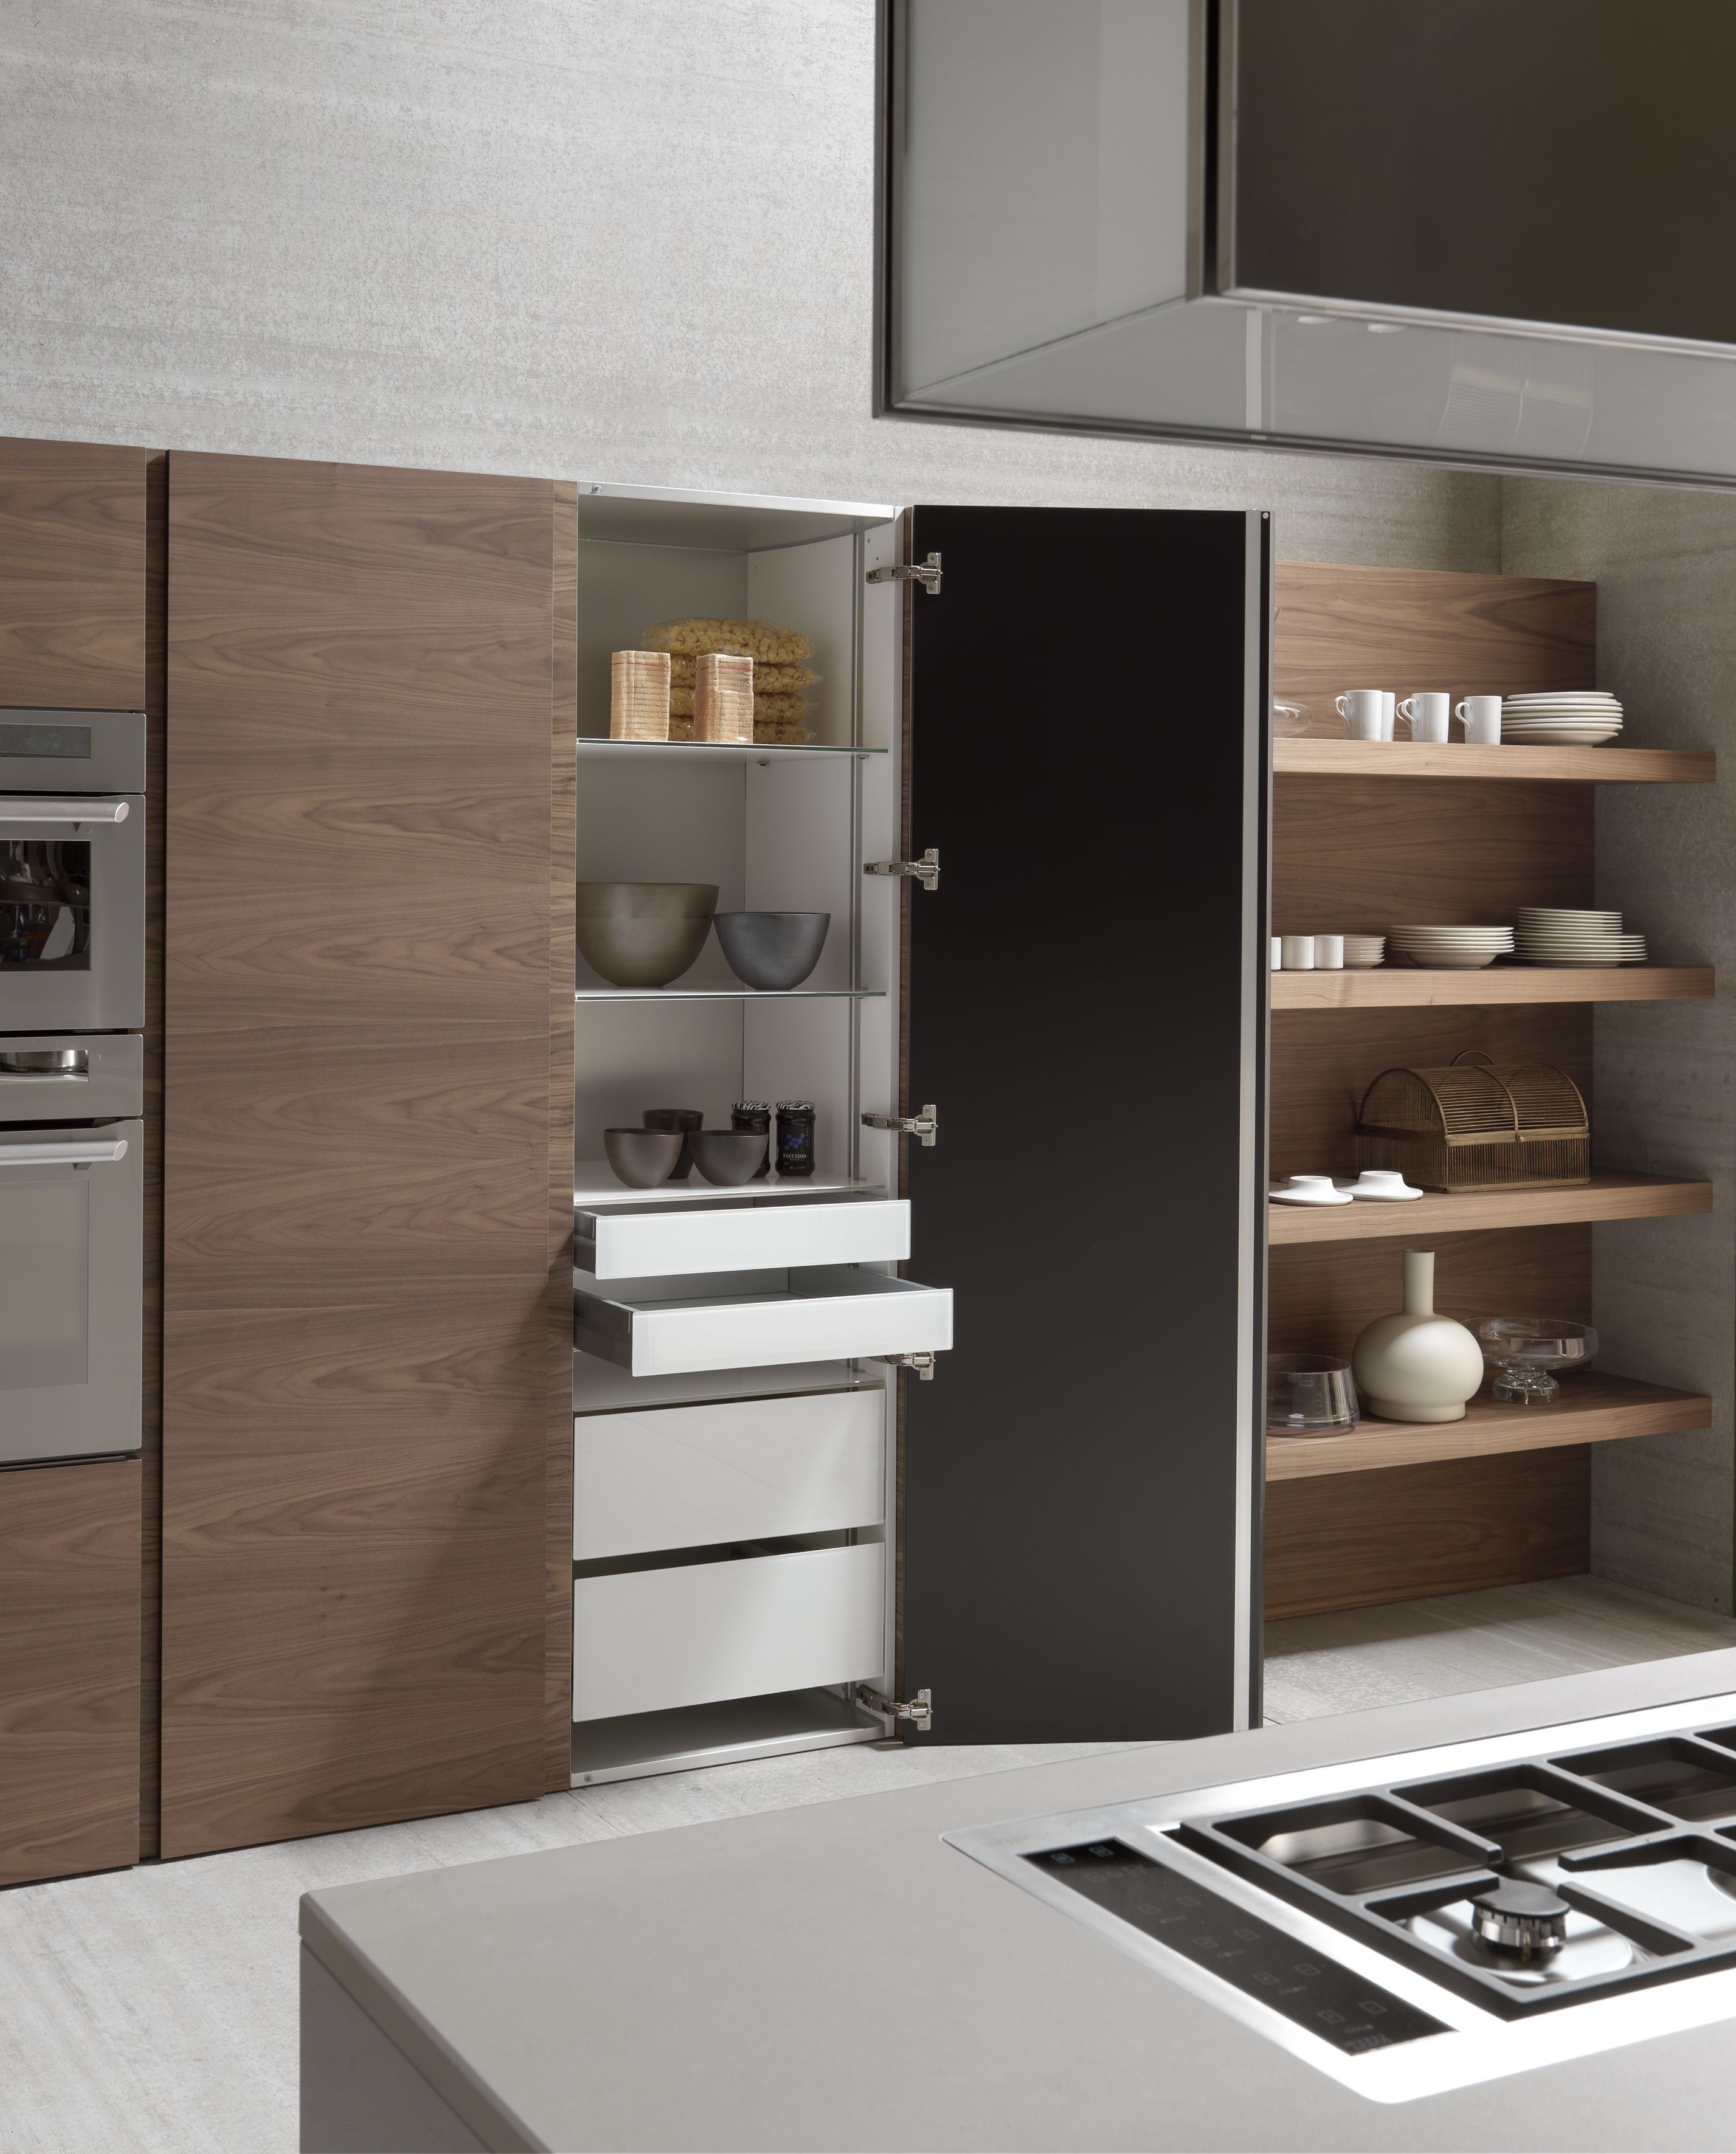 Kitchen Cabinet Unit Cabinets For Mobile Homes Twenty Tall Interior Is Comprised Of 2 Jumbo